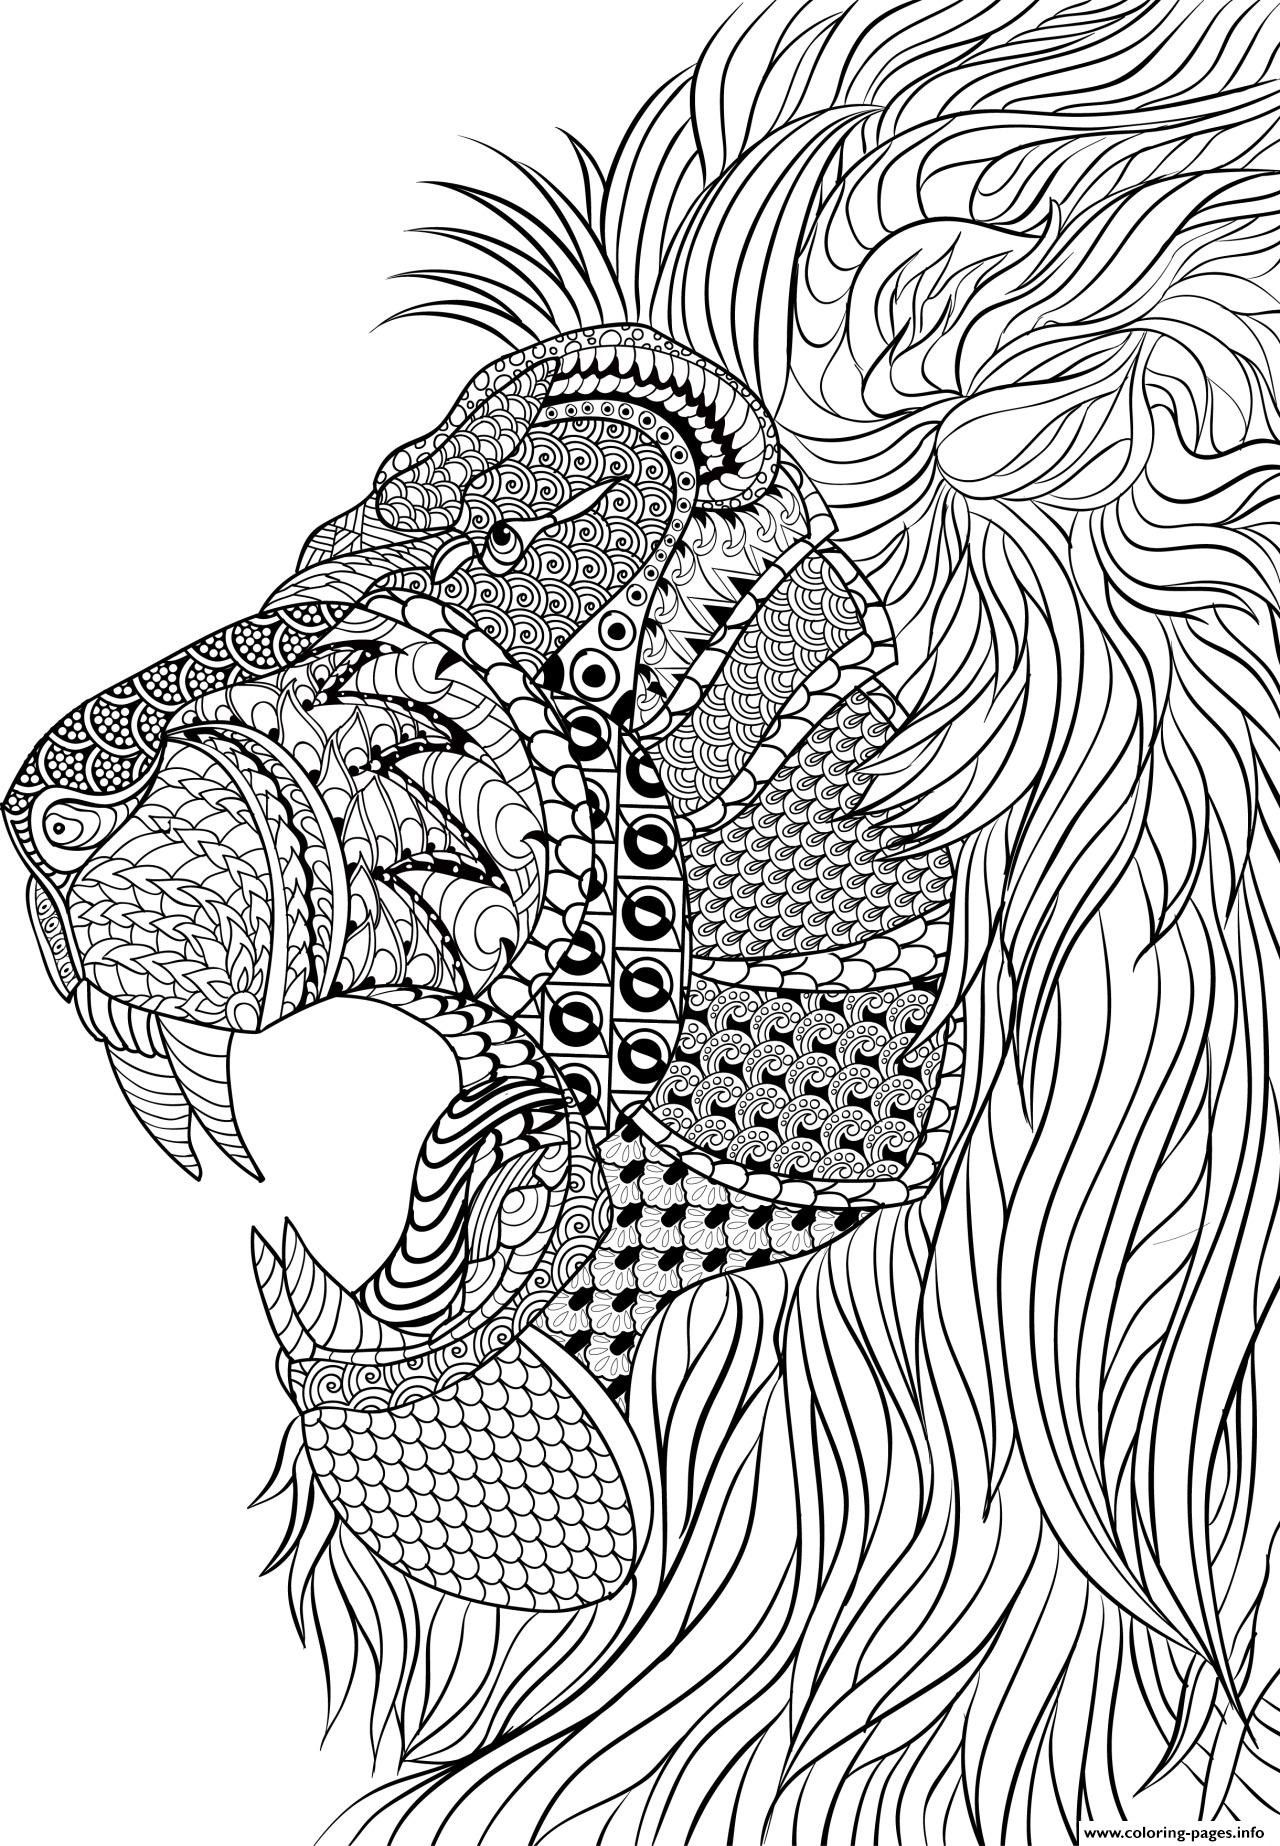 Best ideas about Adult Stress Coloring Books . Save or Pin Lion Adult Anti Stress Coloring Pages Printable Now.